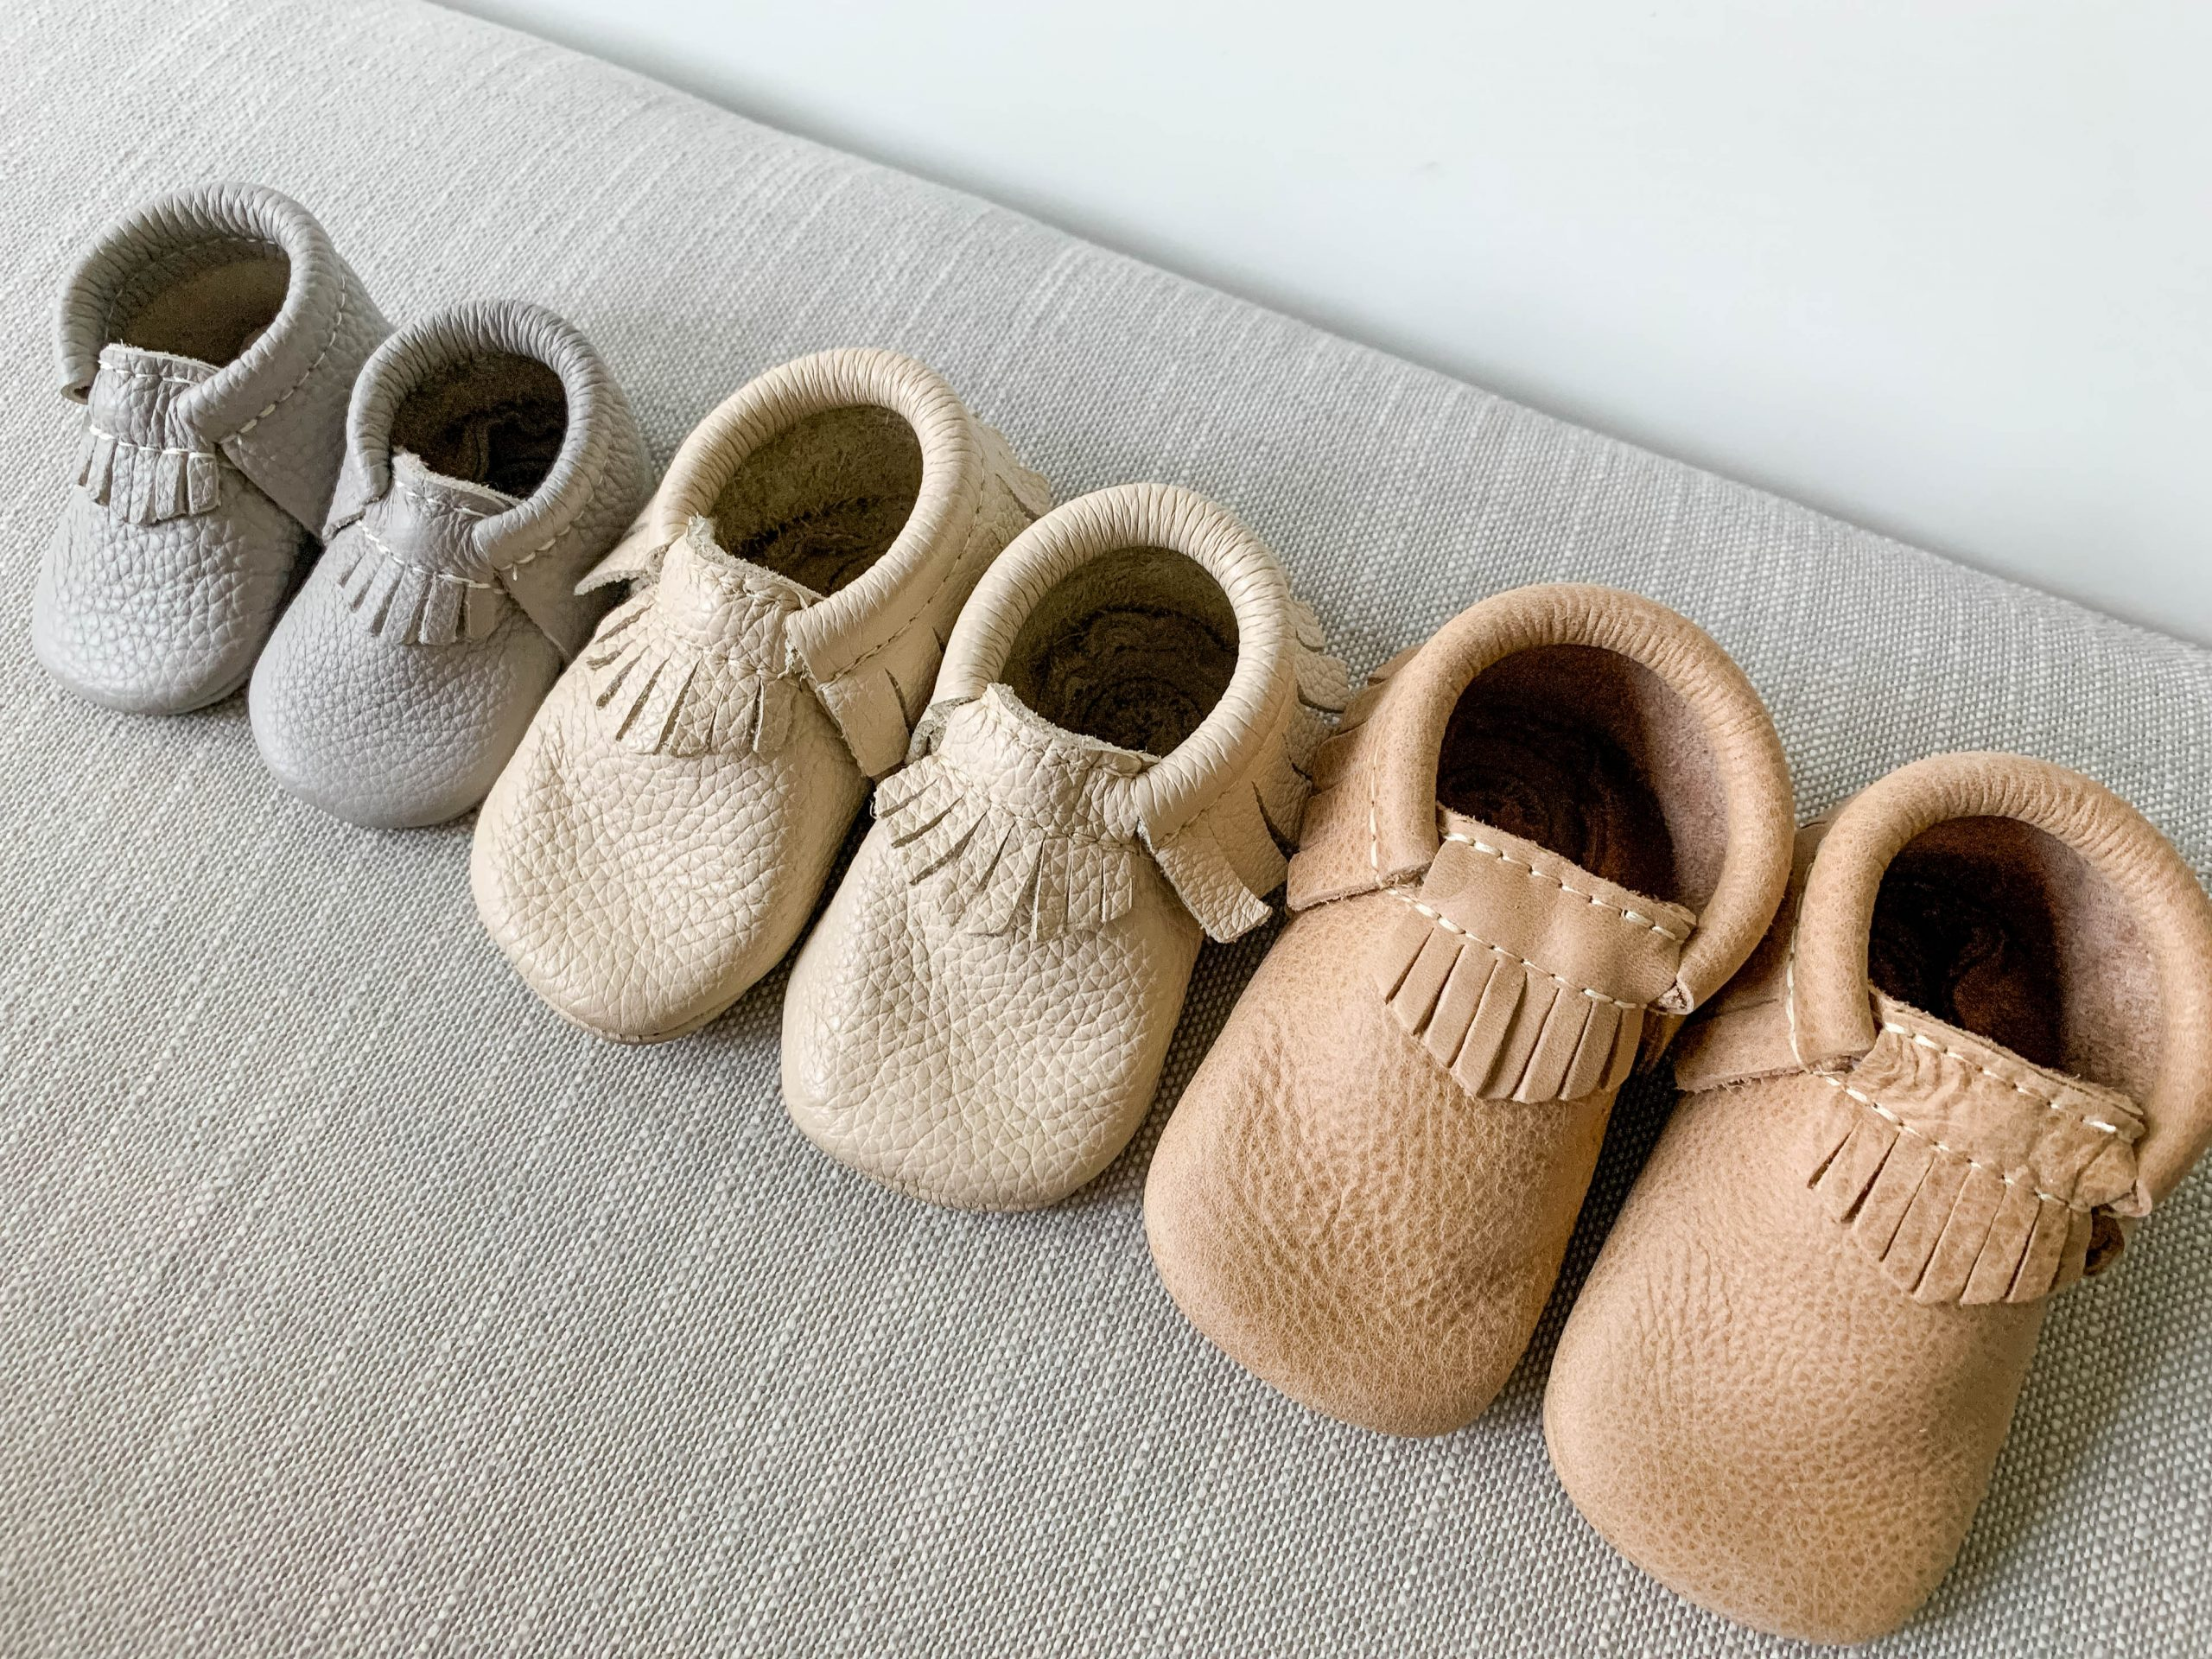 freshly picked moccasins, freshly picked review